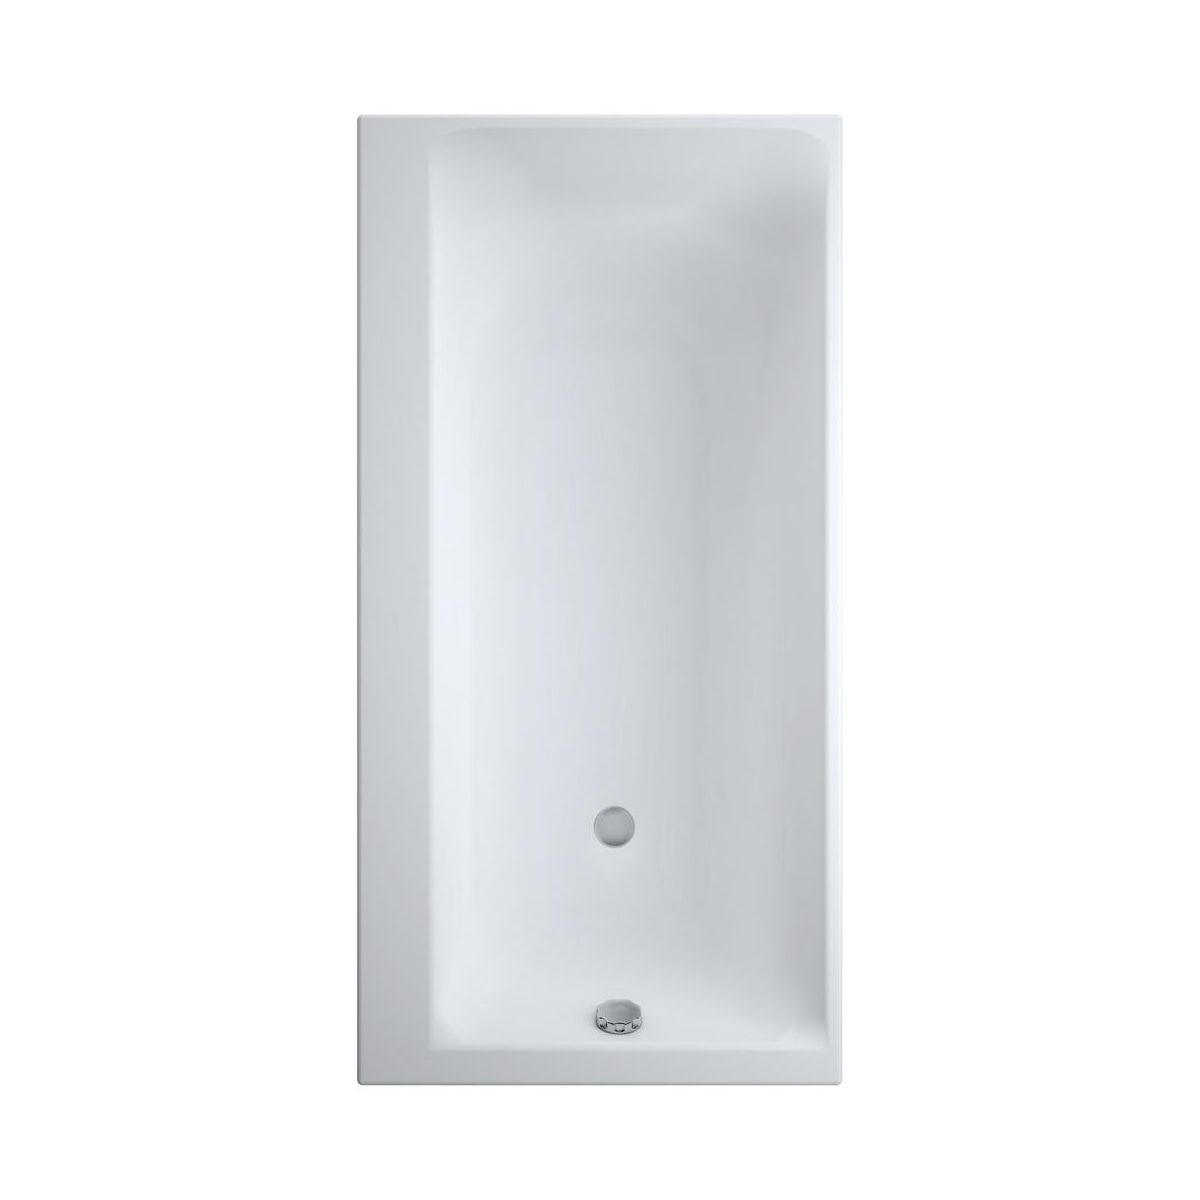 Wanna akrylowa smart cersanit sprawd opinie w leroy merlin - Smart tiles chez leroy merlin ...